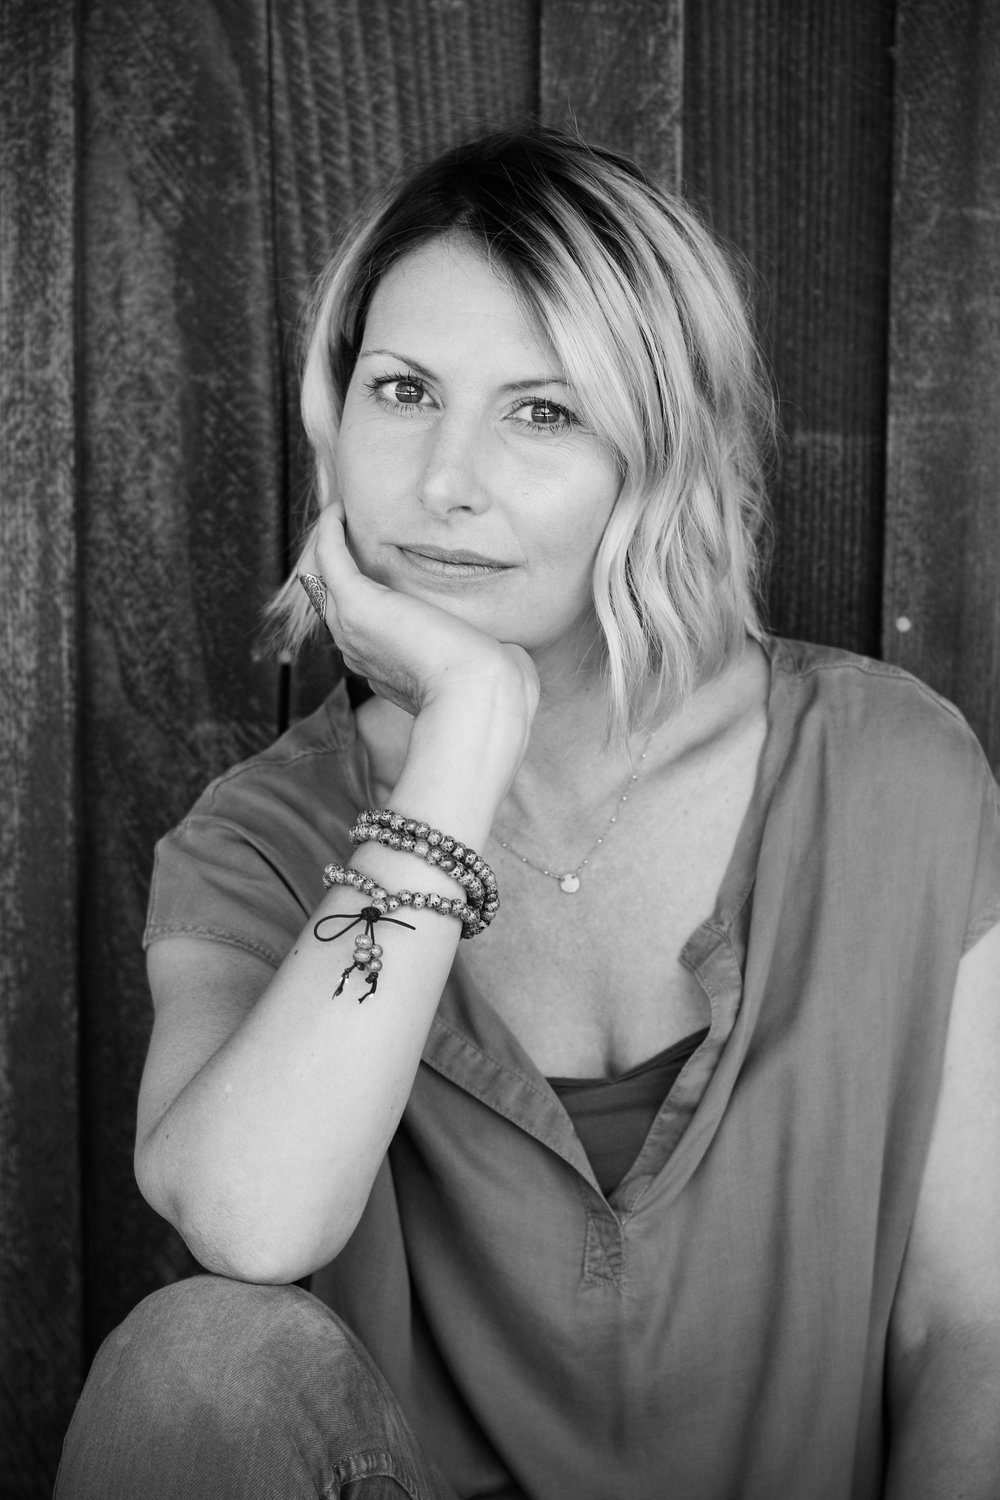 alexandra-rice-photography-realtor-santa-cruz-headshot-portrait-roaring-camp-black-white.jpg